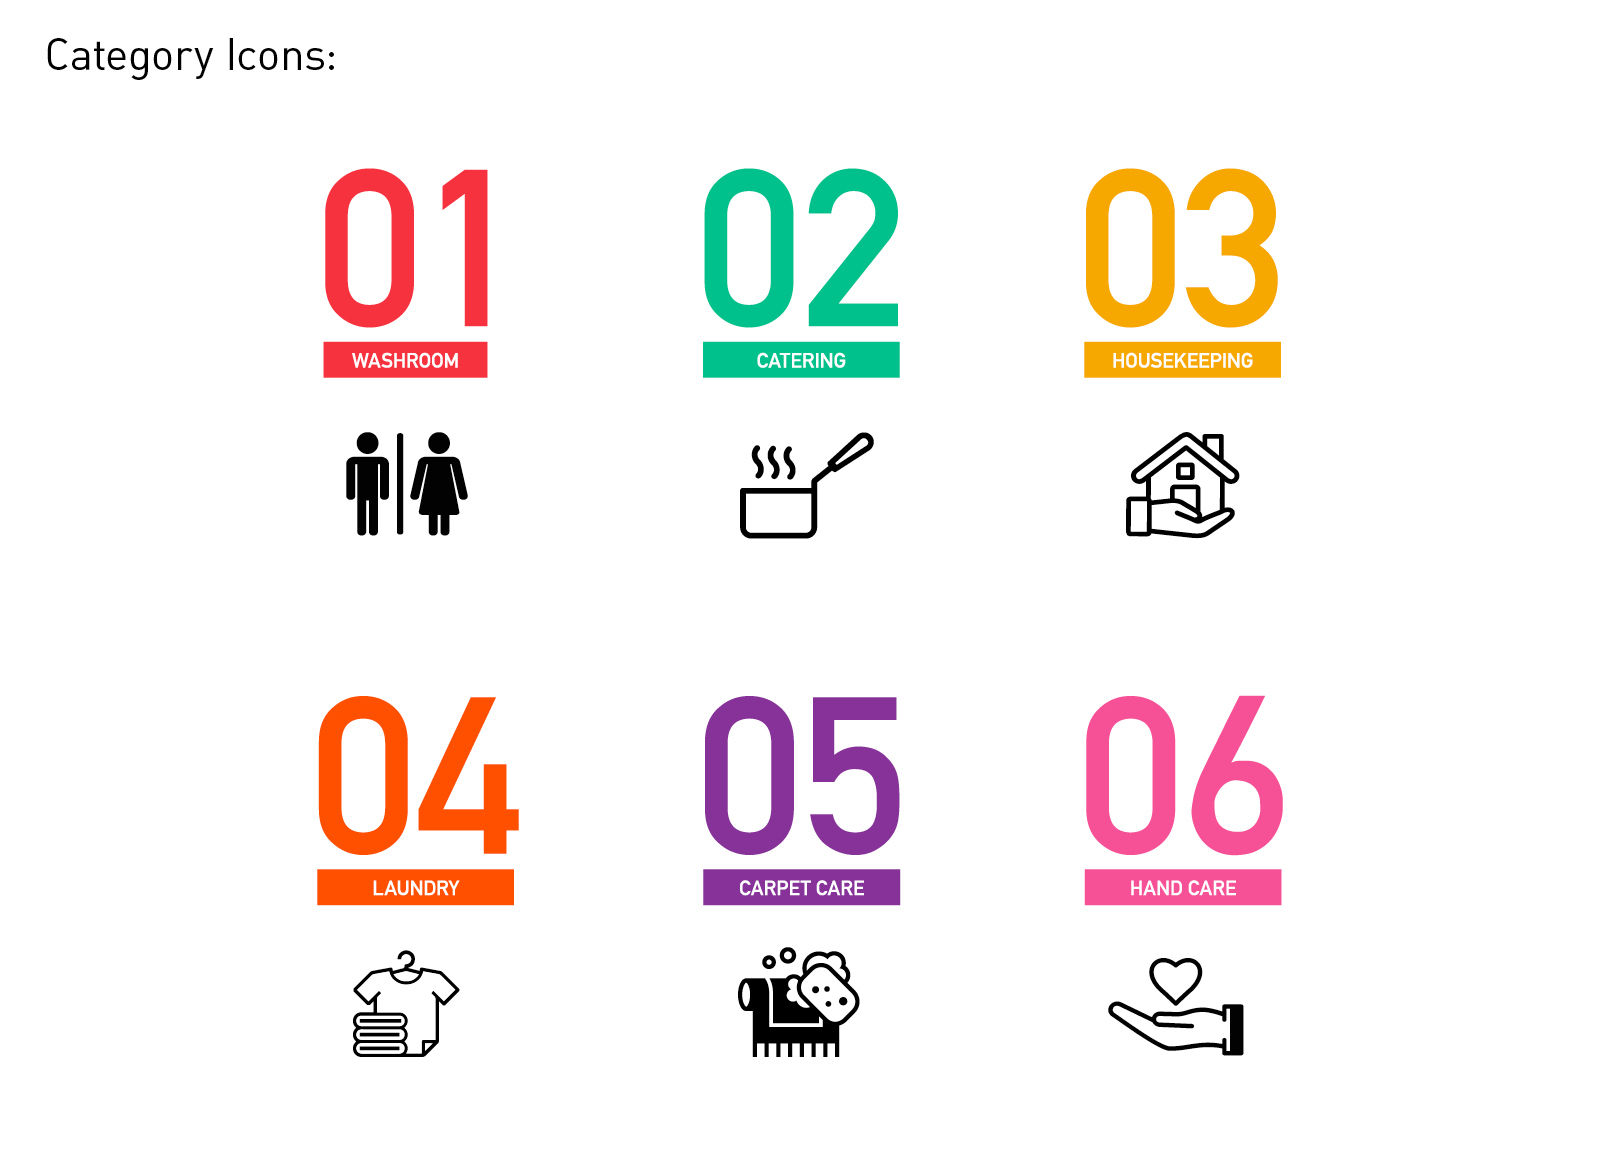 Product category icon design and application